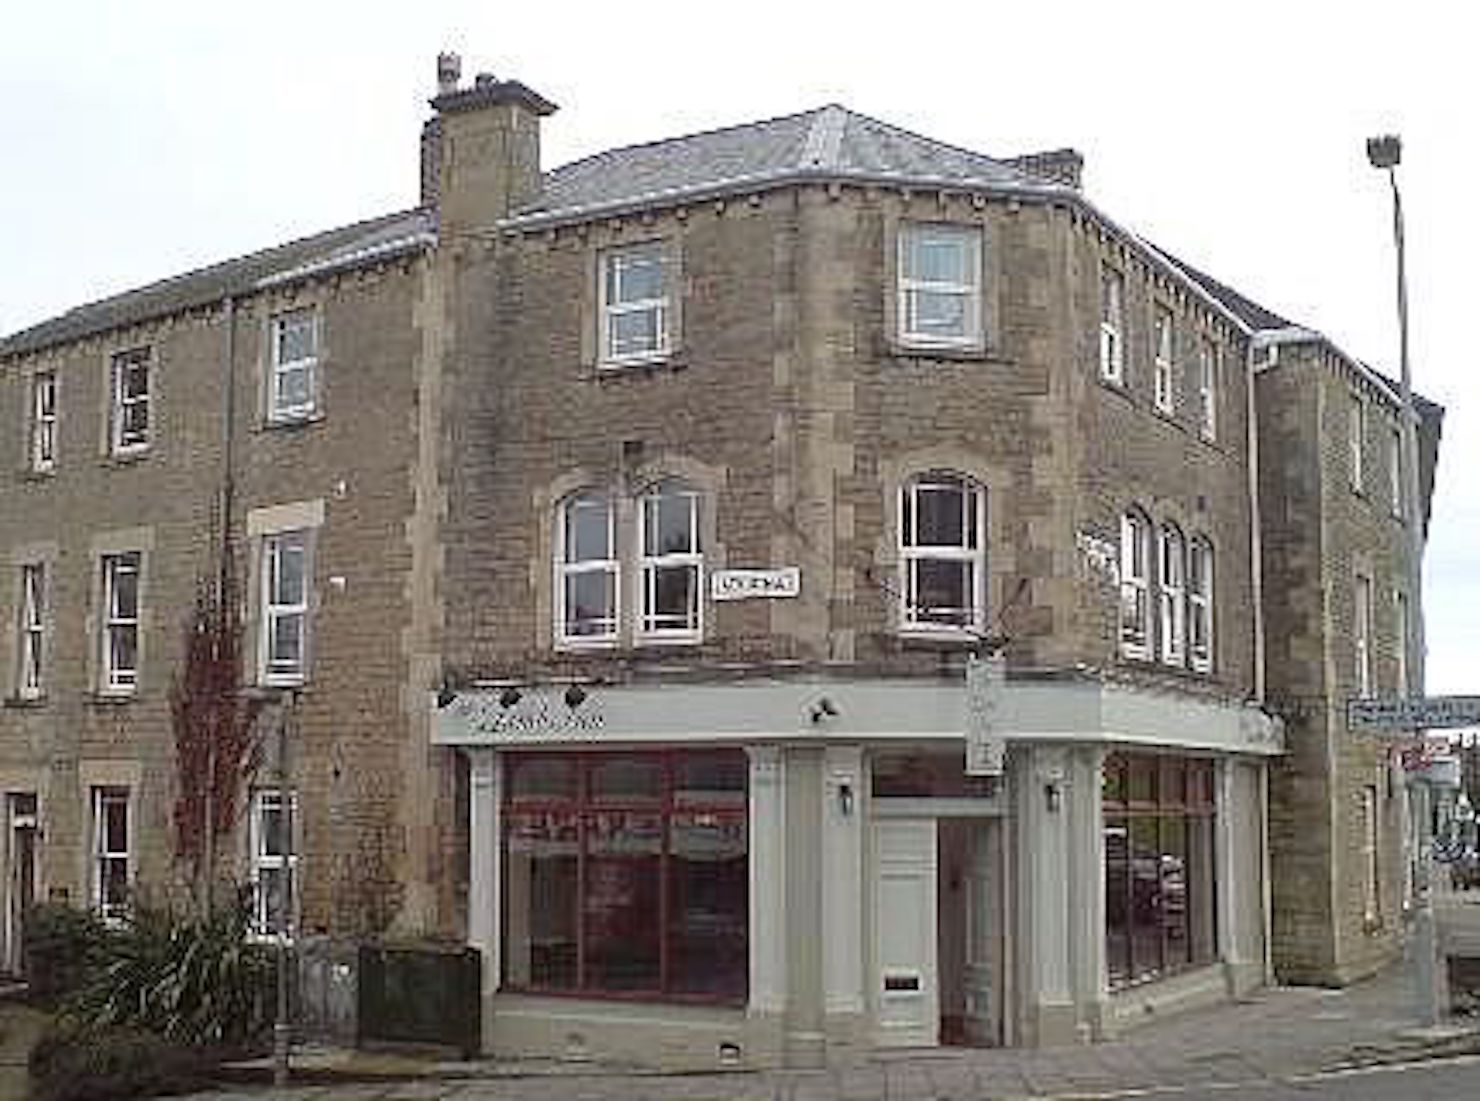 A large brick building at Frome Corner.